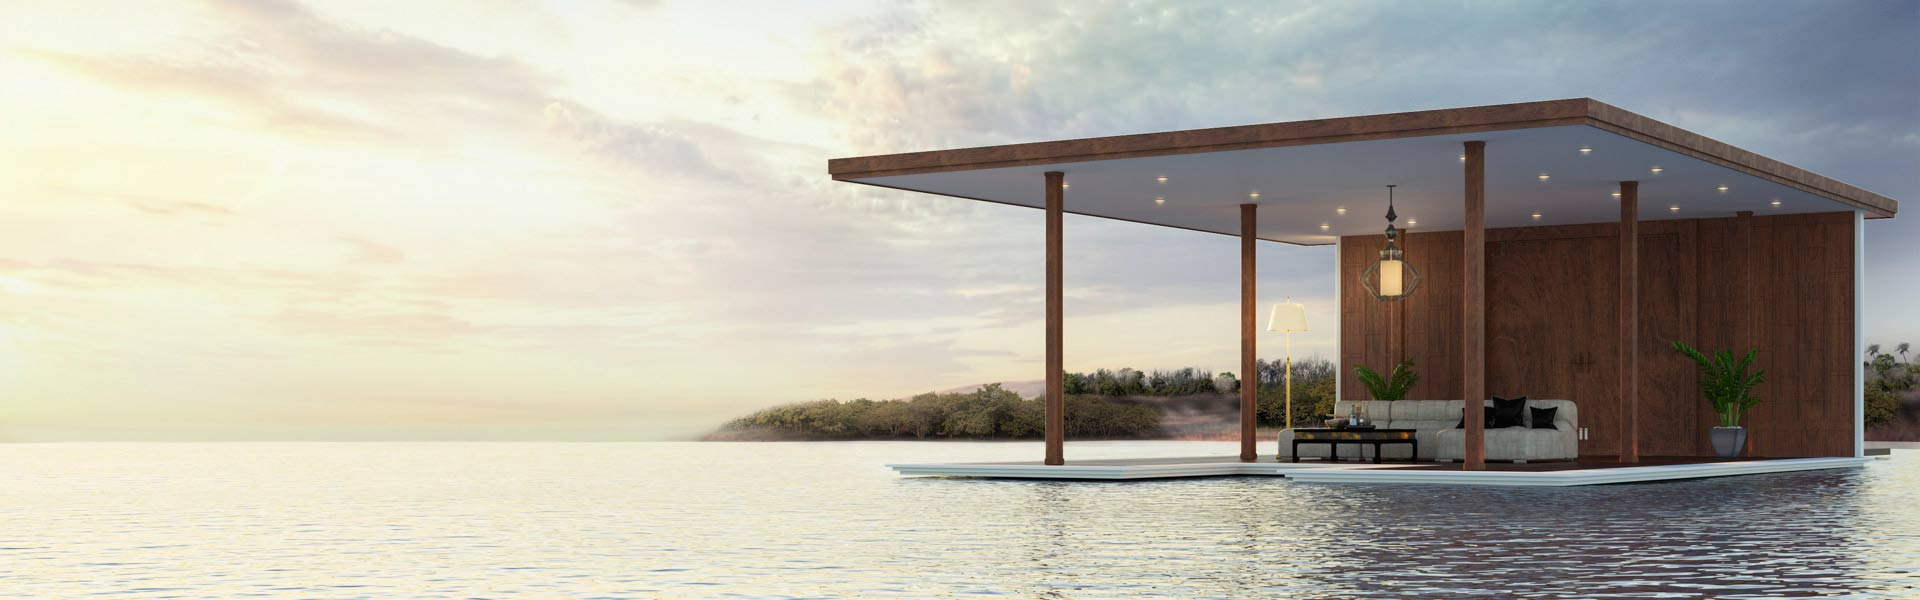 bluet floating solutions mipim 2019